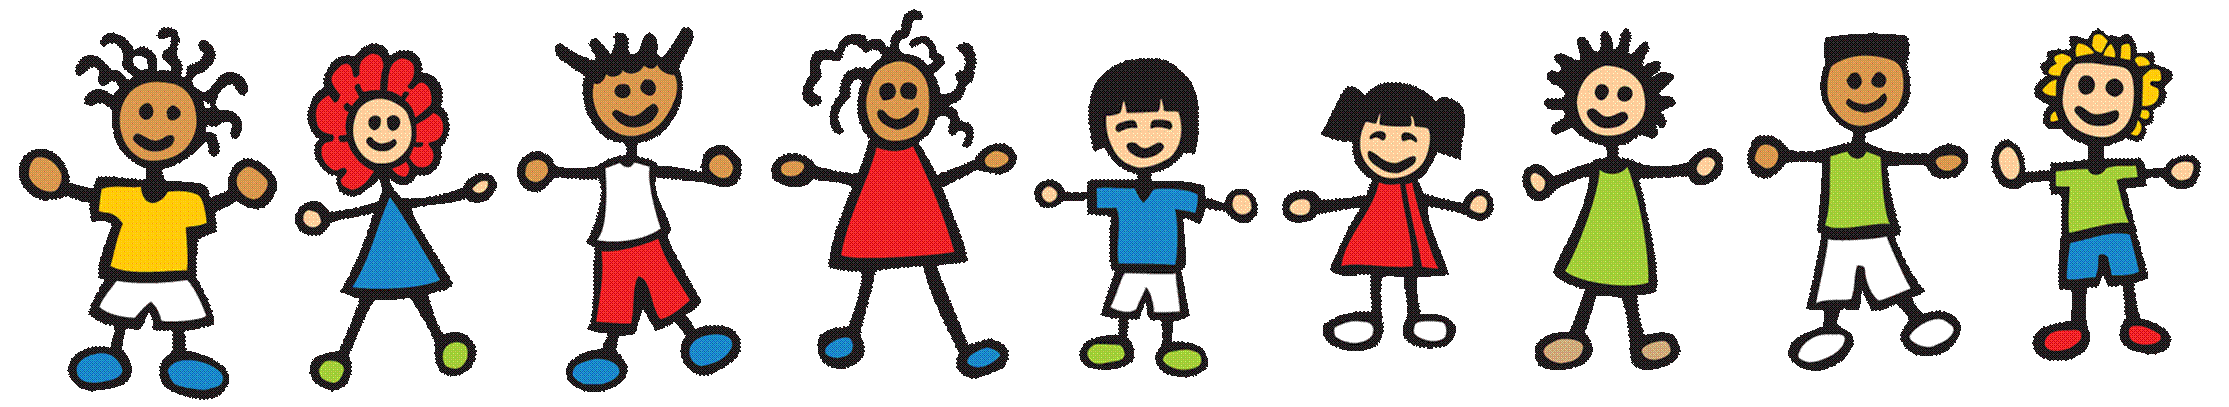 Children playing clipart clipartmonk free clip art images